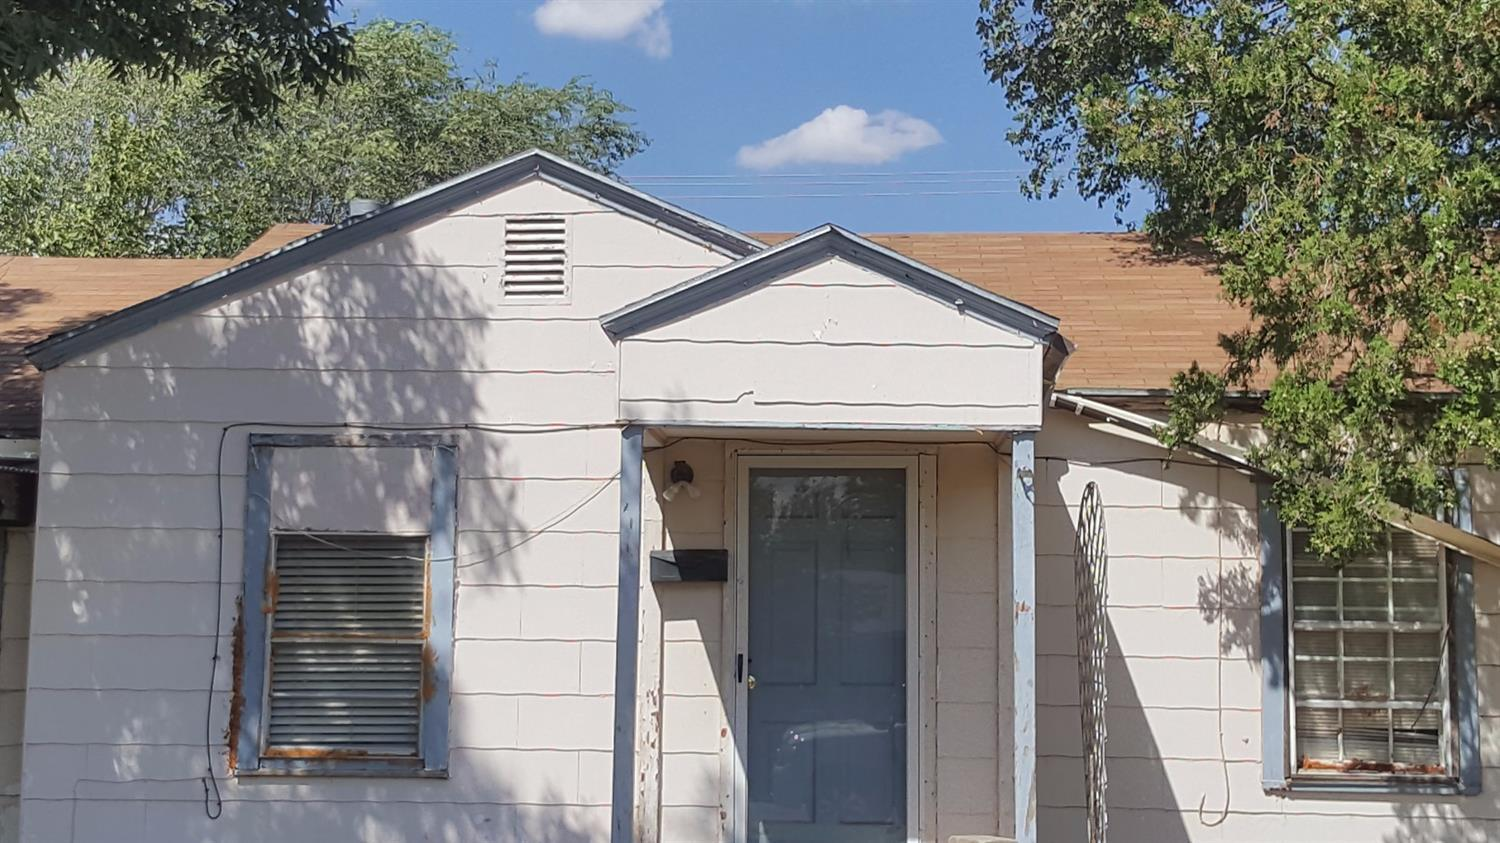 Property Photo & Listing: 2704 2nd Place Lubbock TX.| MLS# 201707263 | Real Estate ...